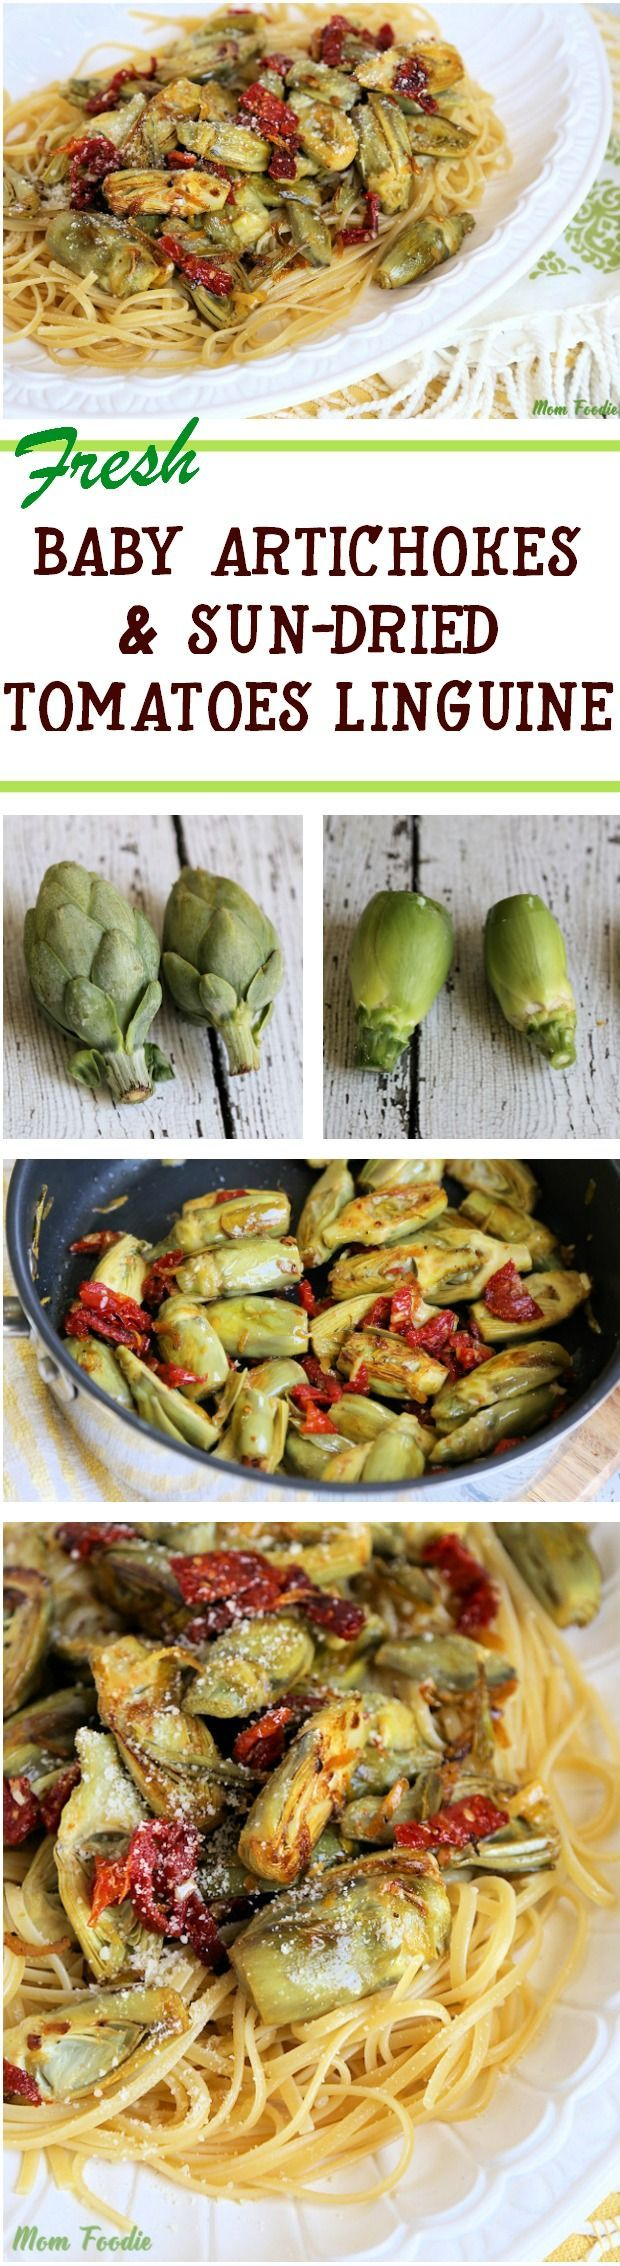 Baby Artichokes & Sundried Tomatoes over Linguini